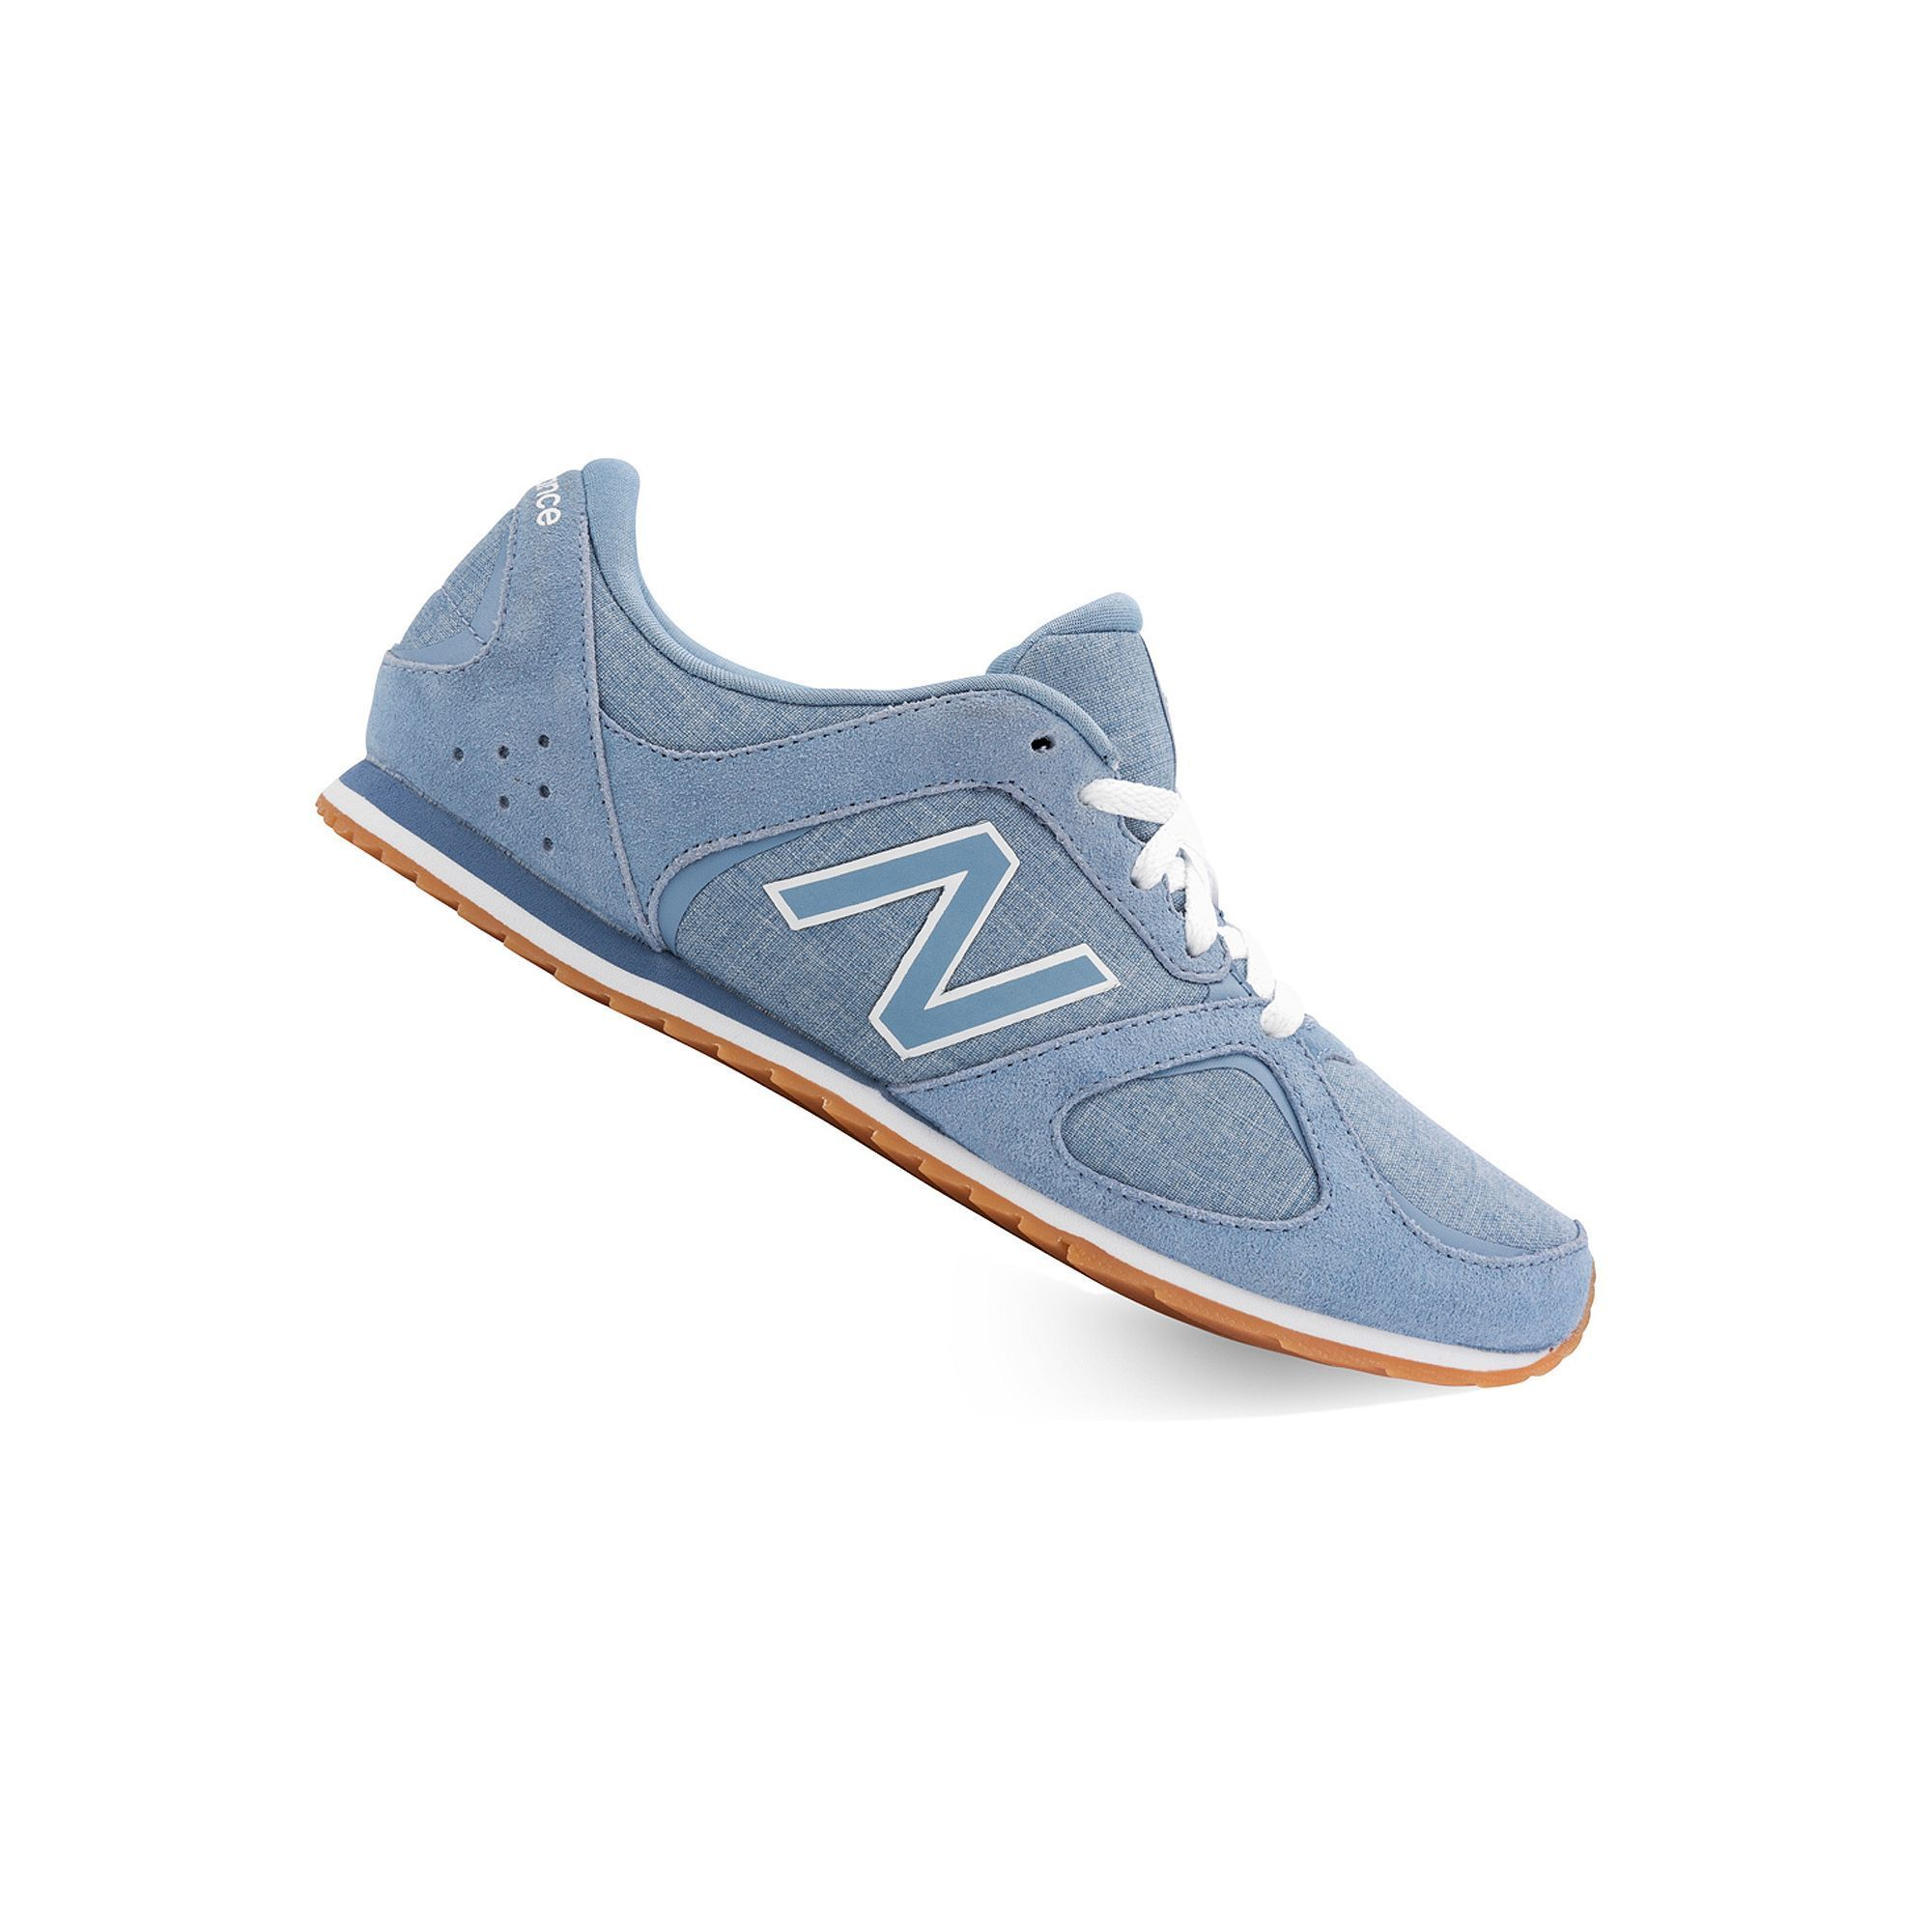 Just Buy It New Balance 555 Women's Athletic Shoes Blue